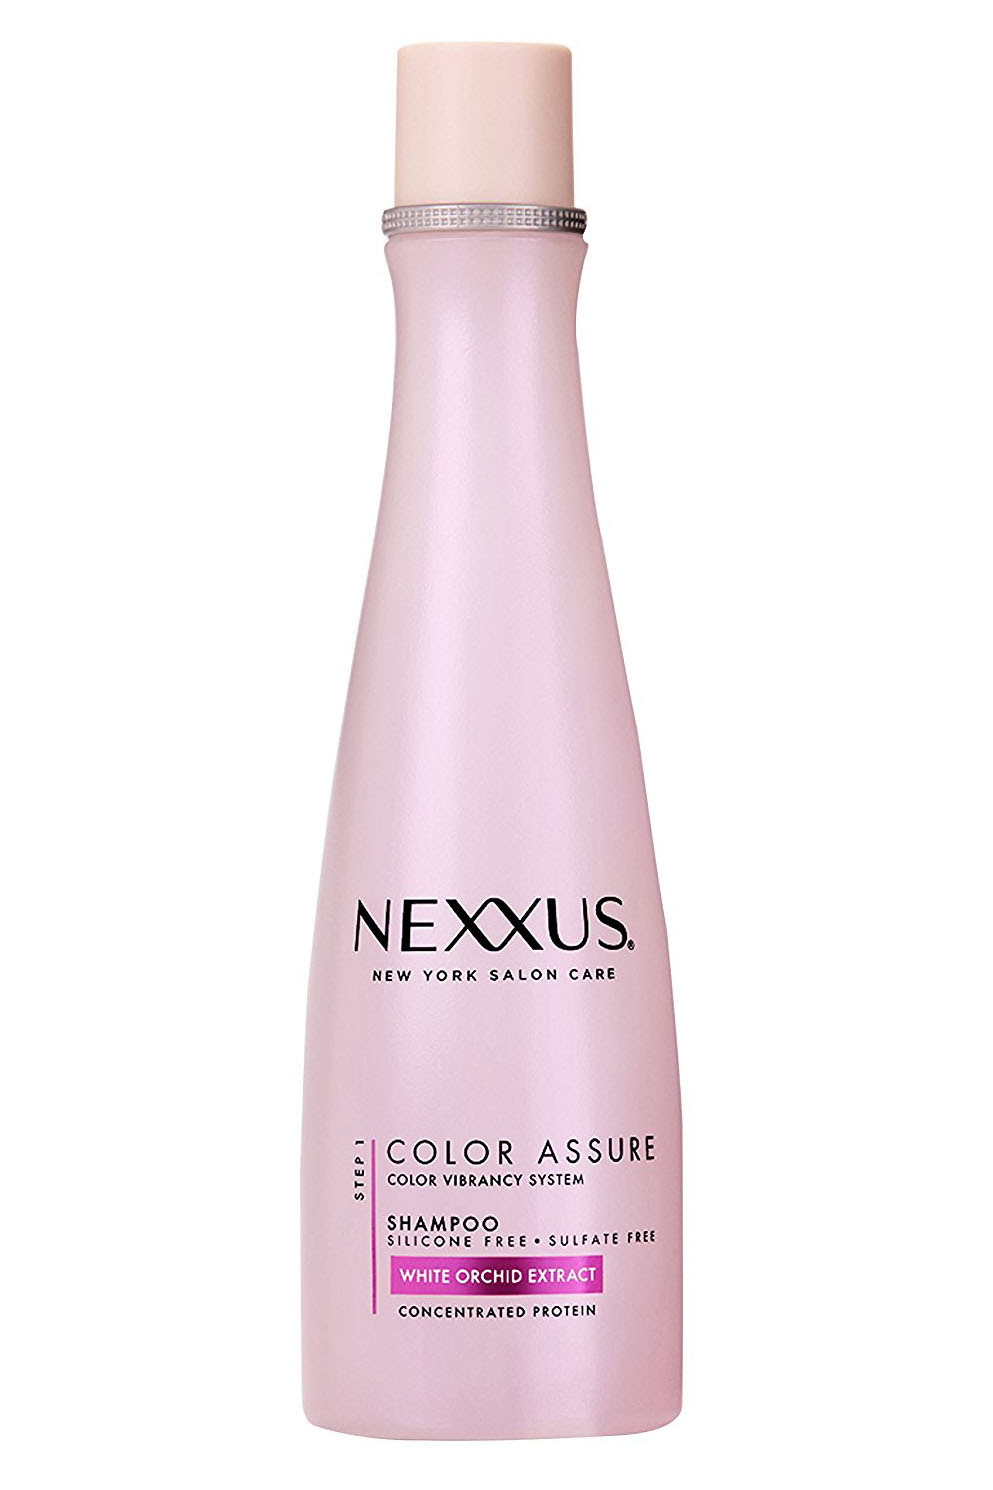 10 Best Shampoos for Colored Hair - Safe Products for Dyed ...